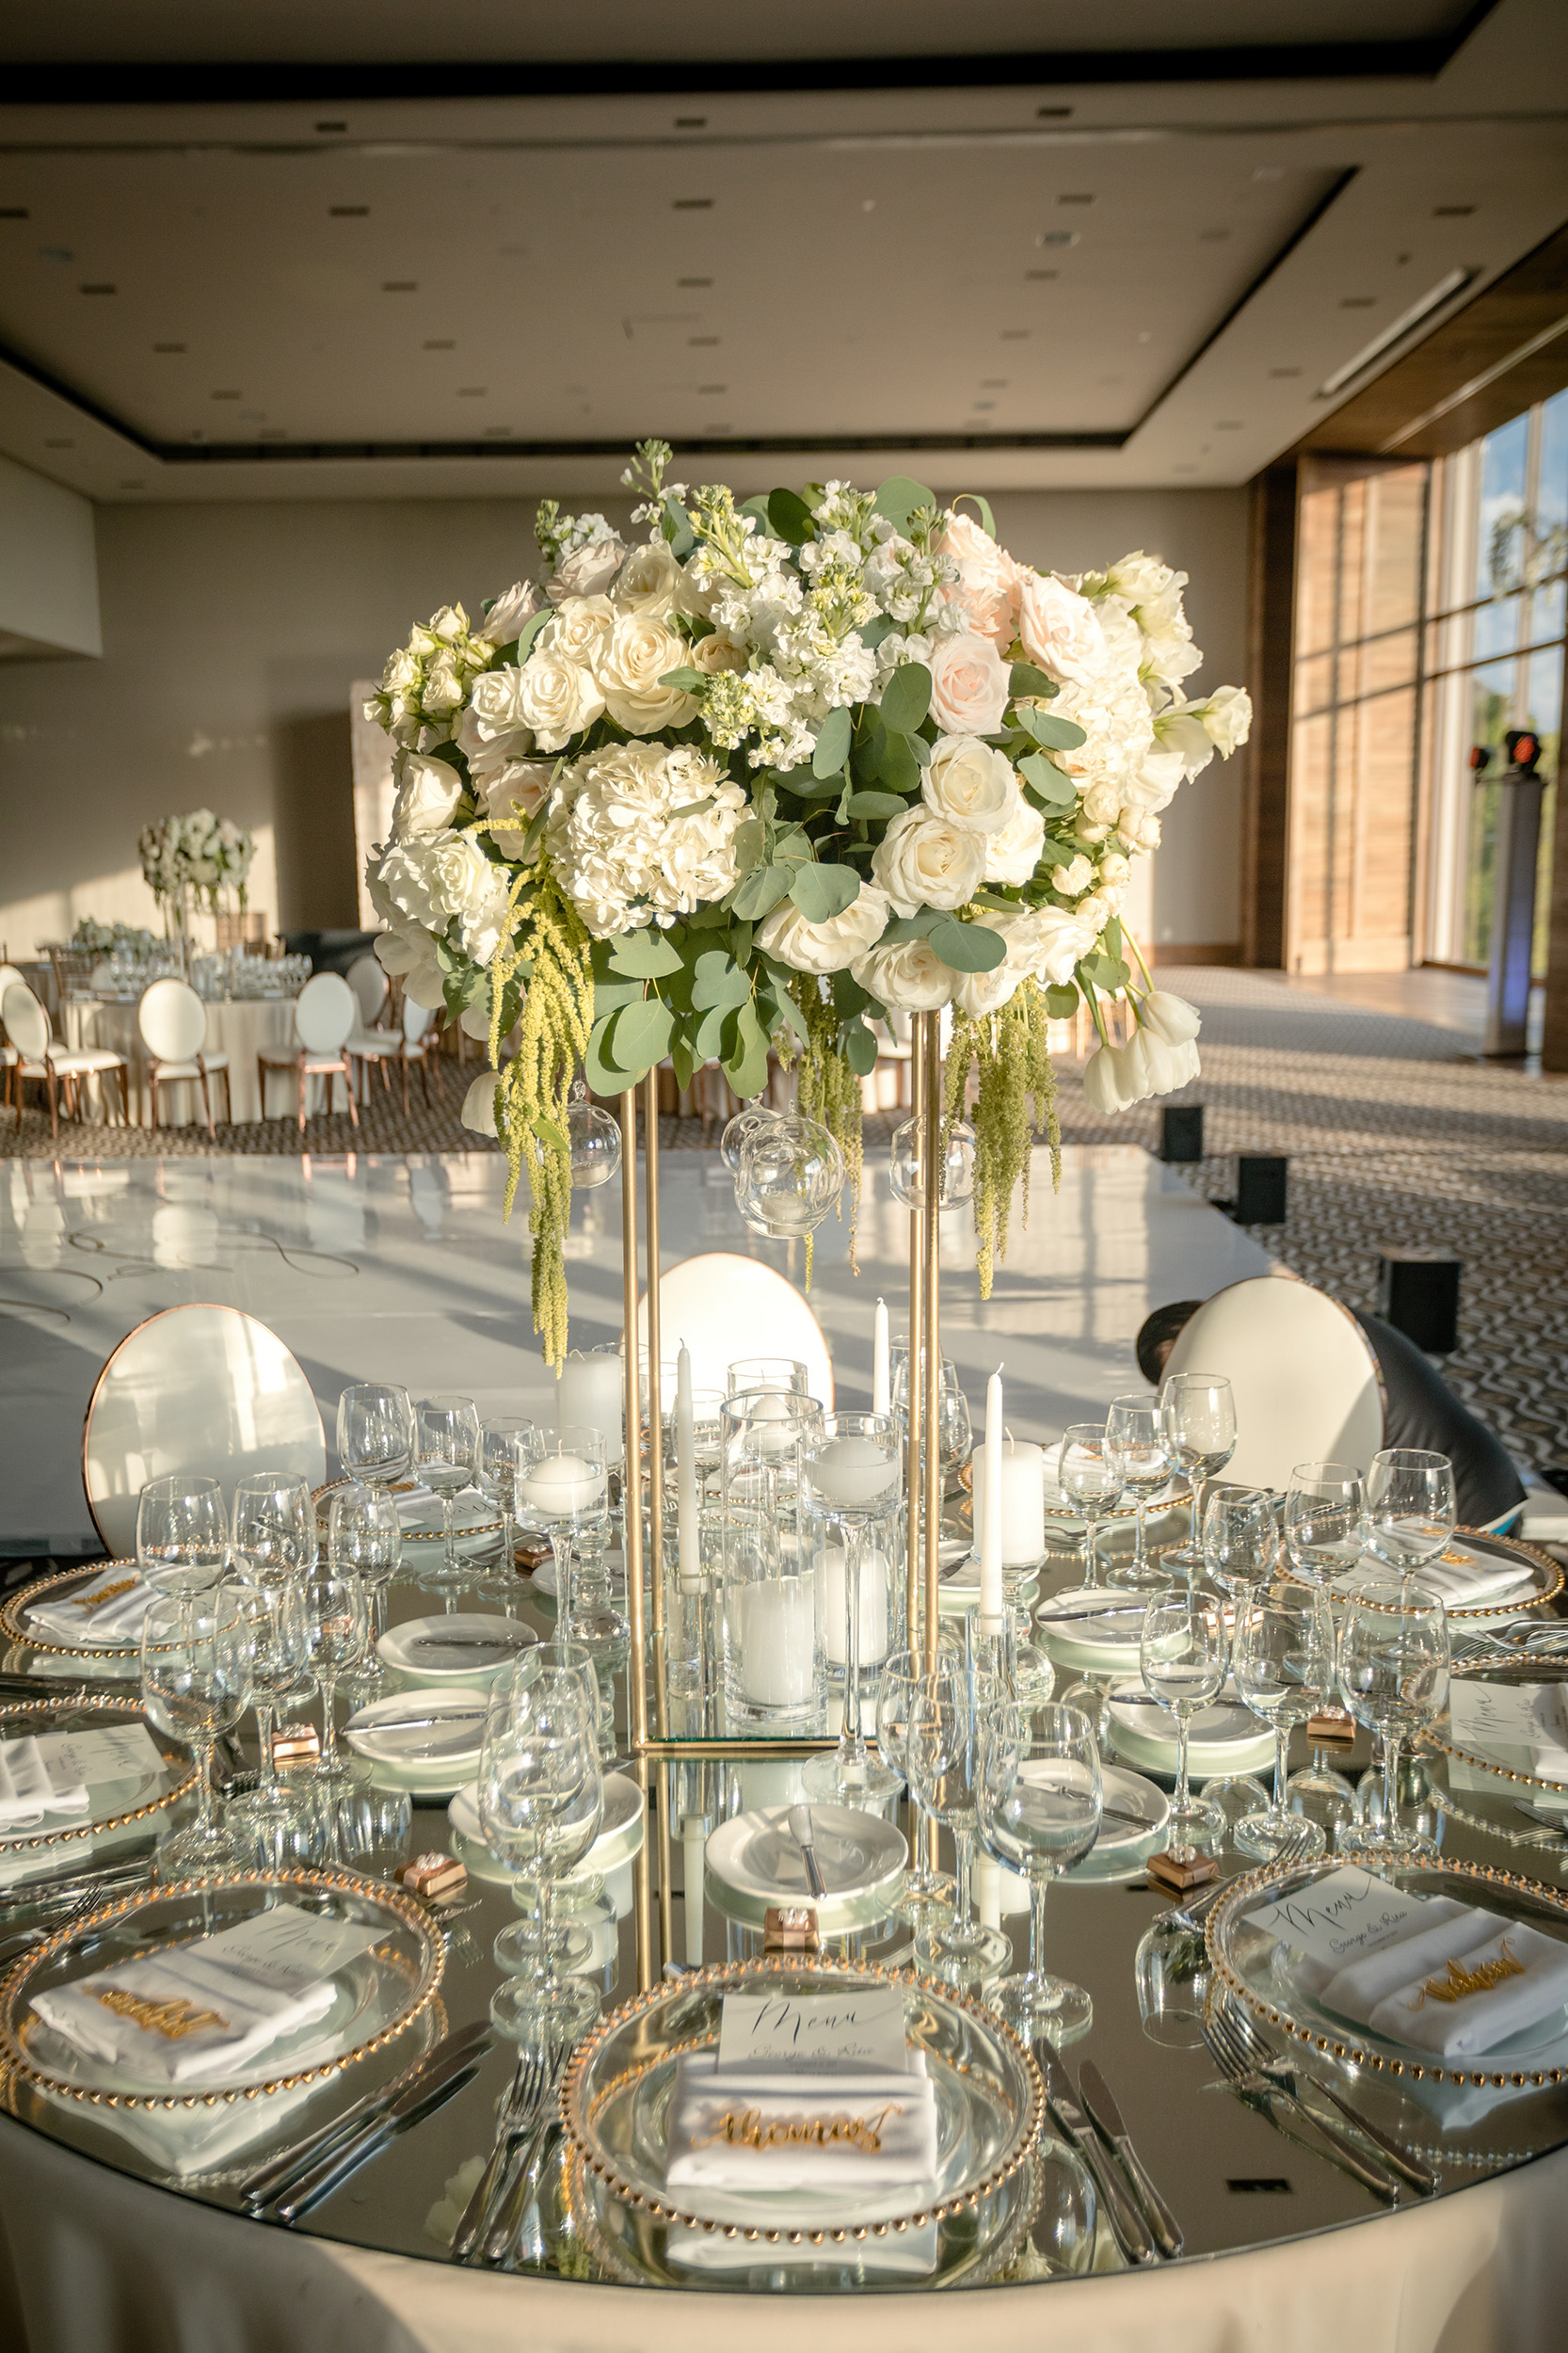 Tall White and Gold Wedding Centerpiece